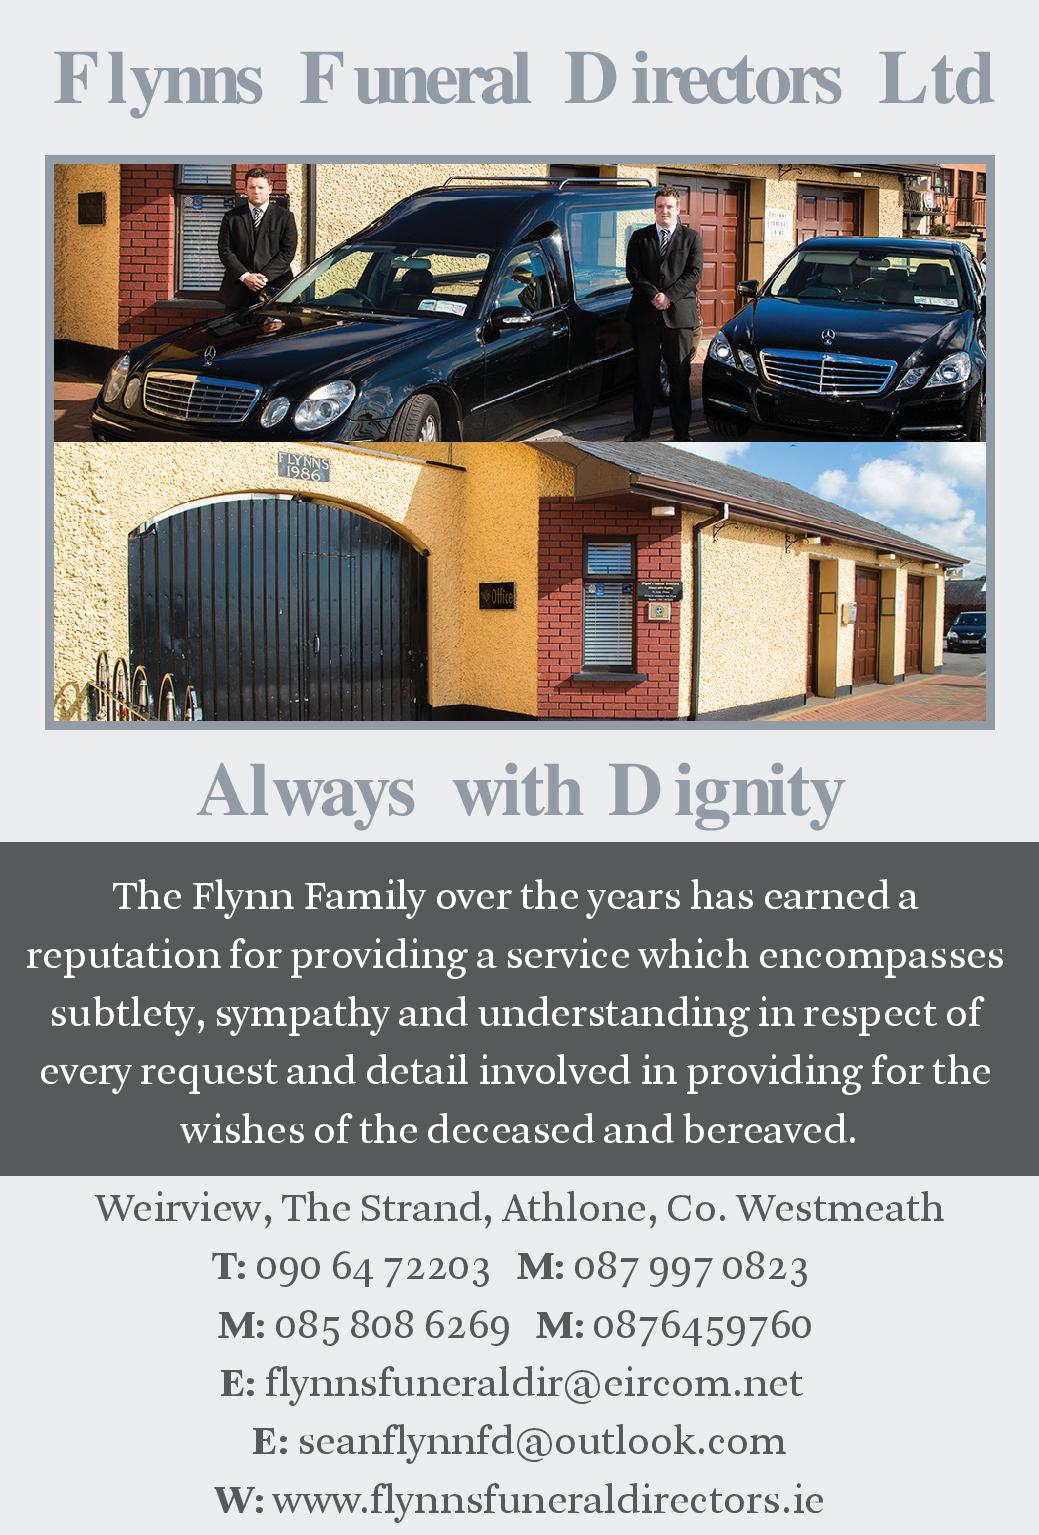 Flynns Funeral Directors 88mm X 130mm(2)-page-001